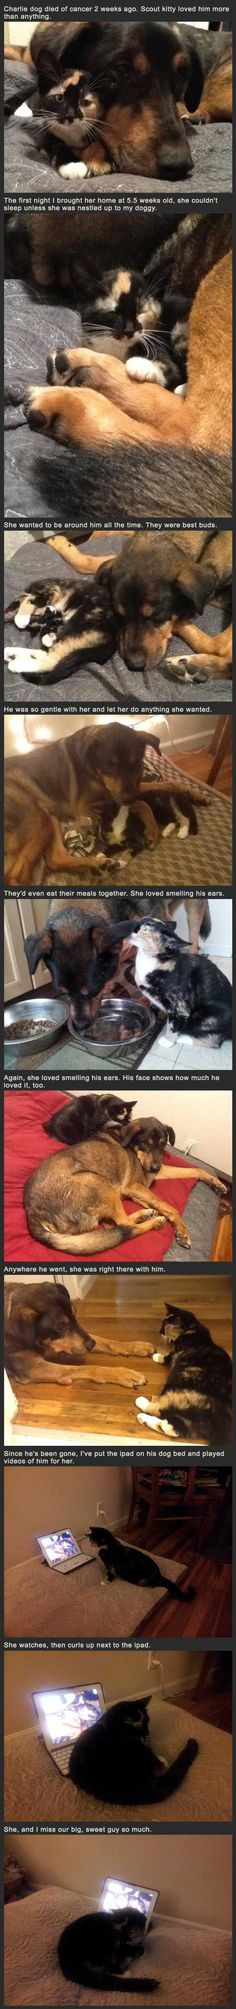 This story is heartbreaking, but it's true love at it's highest.